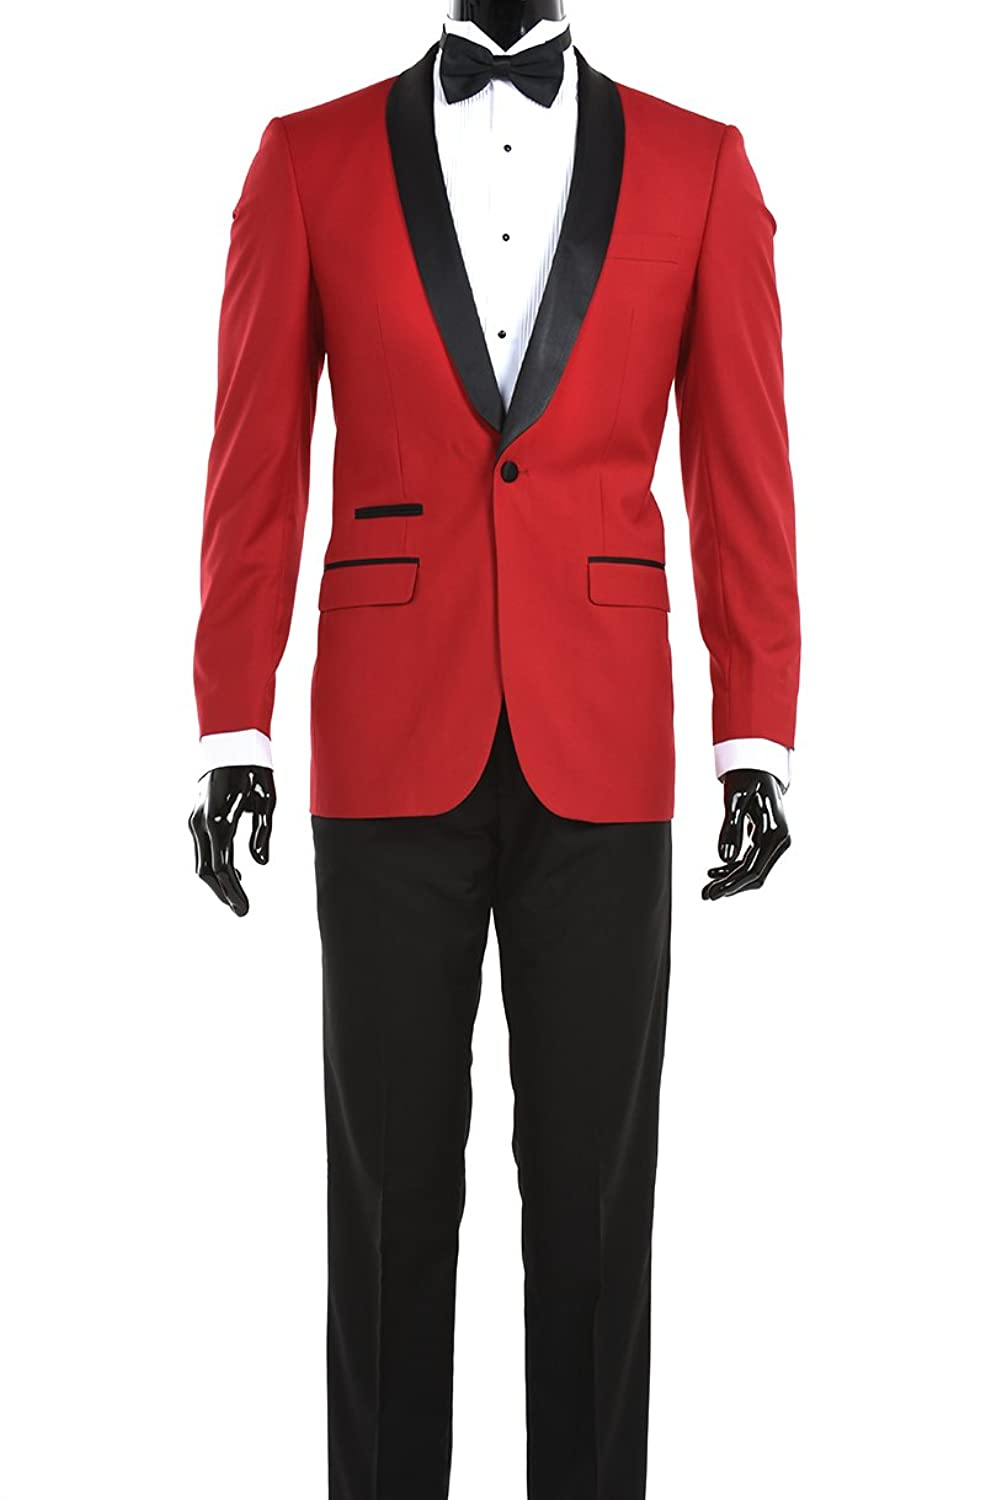 King Formal Wear Modern Luxury Prom Suits (38 Regular, Red with ...